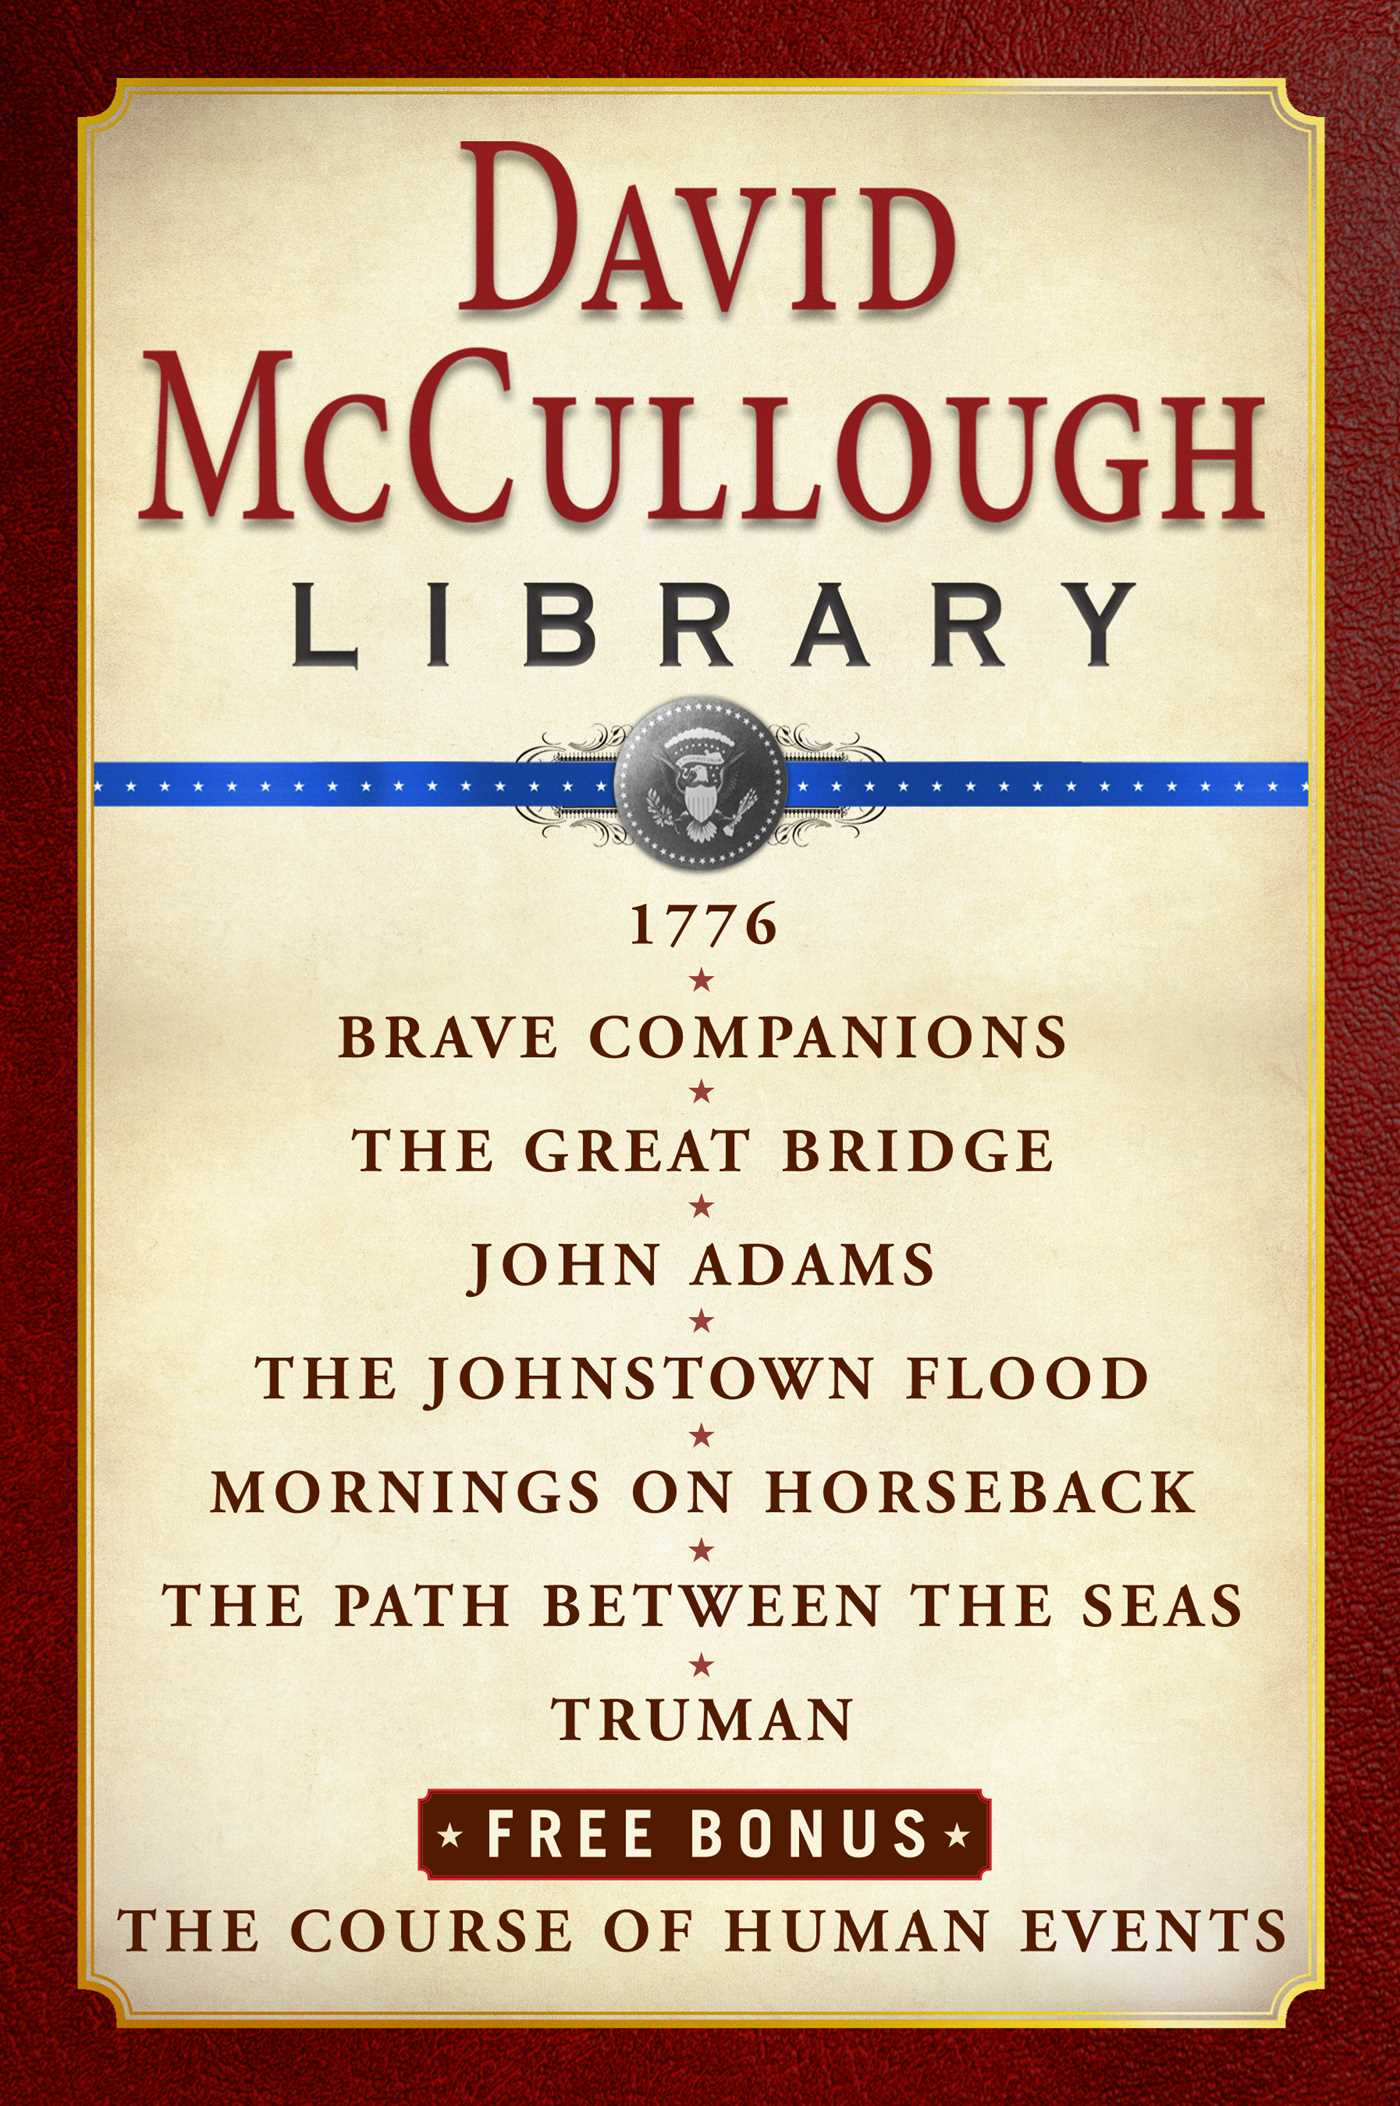 David mccullough library e book box set 9781451658255 hr